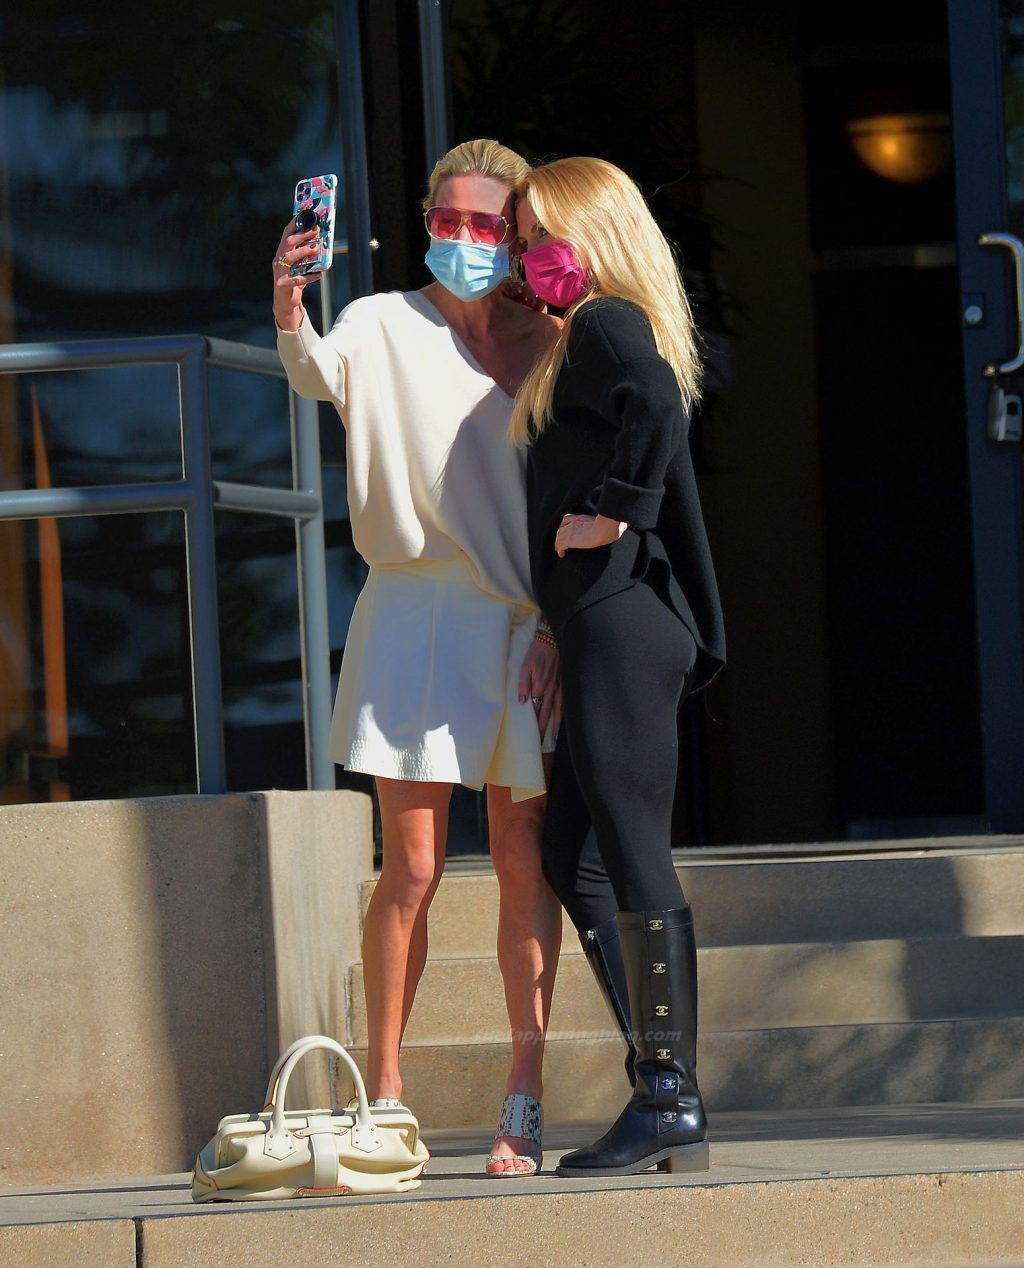 Braunwyn Windham-Burke Visits Beauty Salon After Being Spotted With Her New Girlfriend (7 Photos)